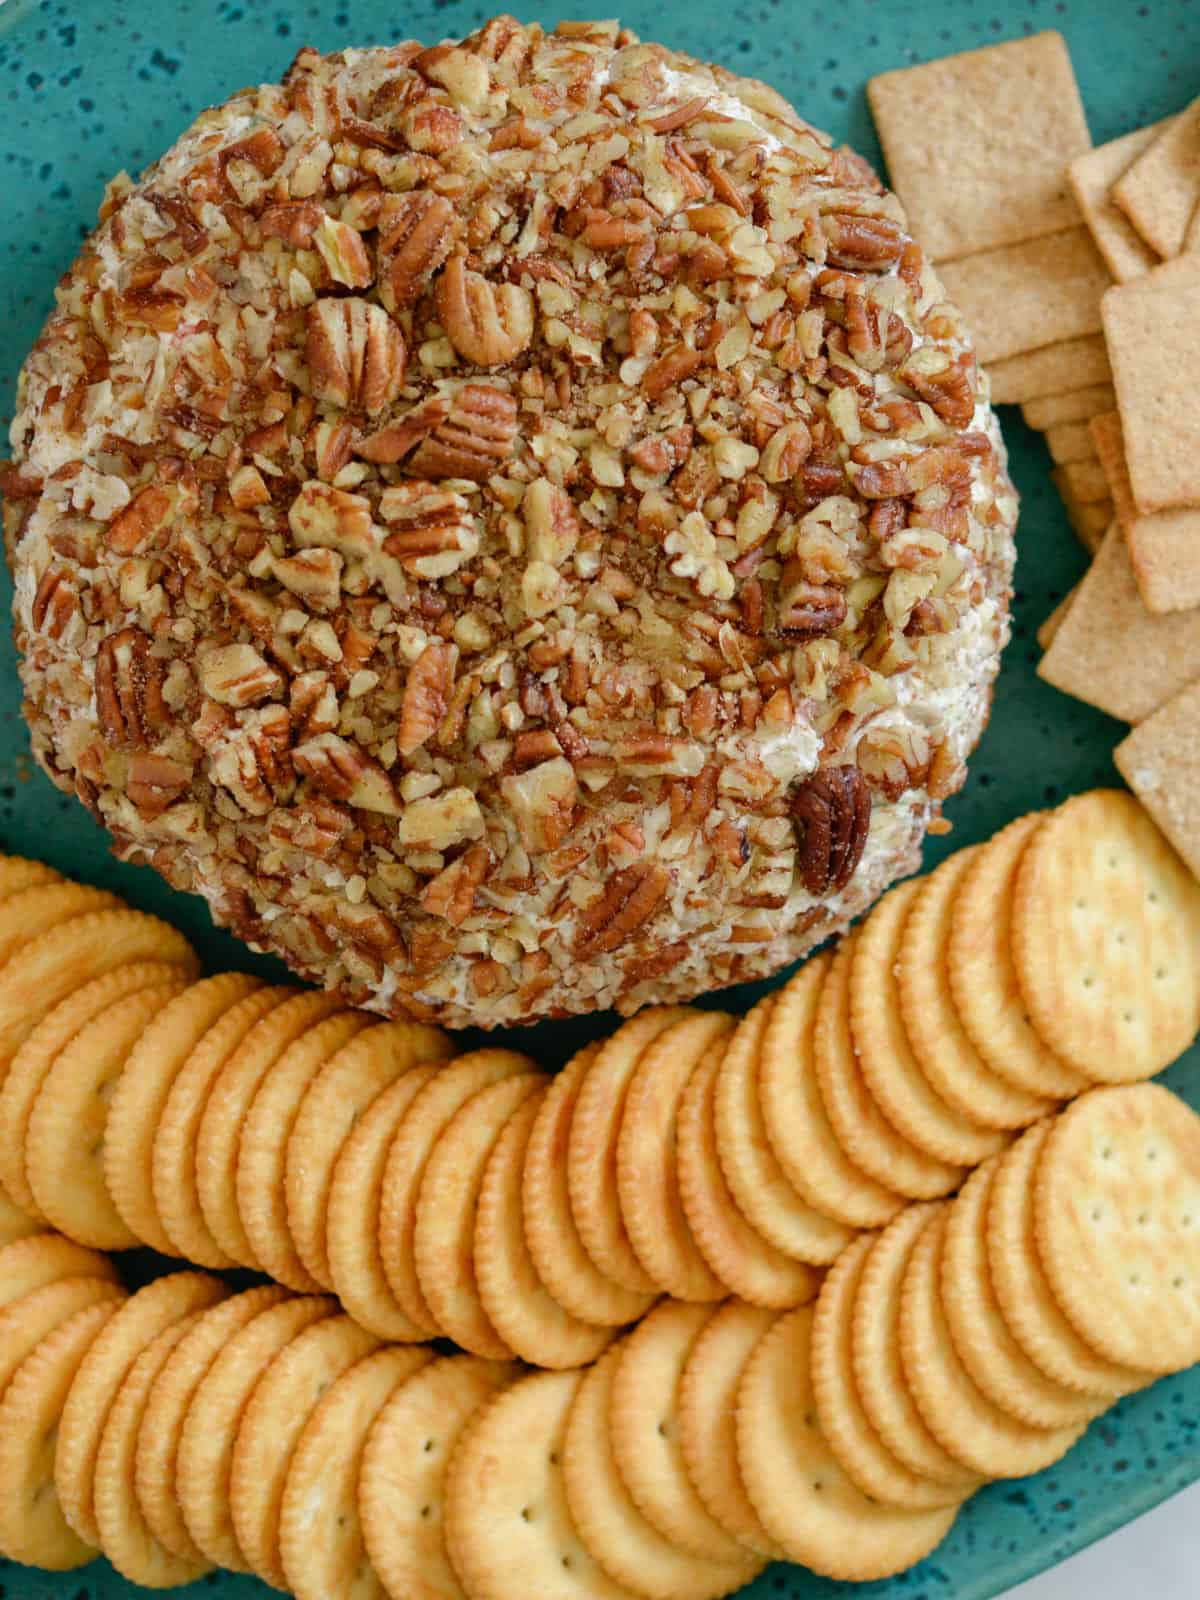 pineapple pecan cheese ball with ritz crackers and wheat thins